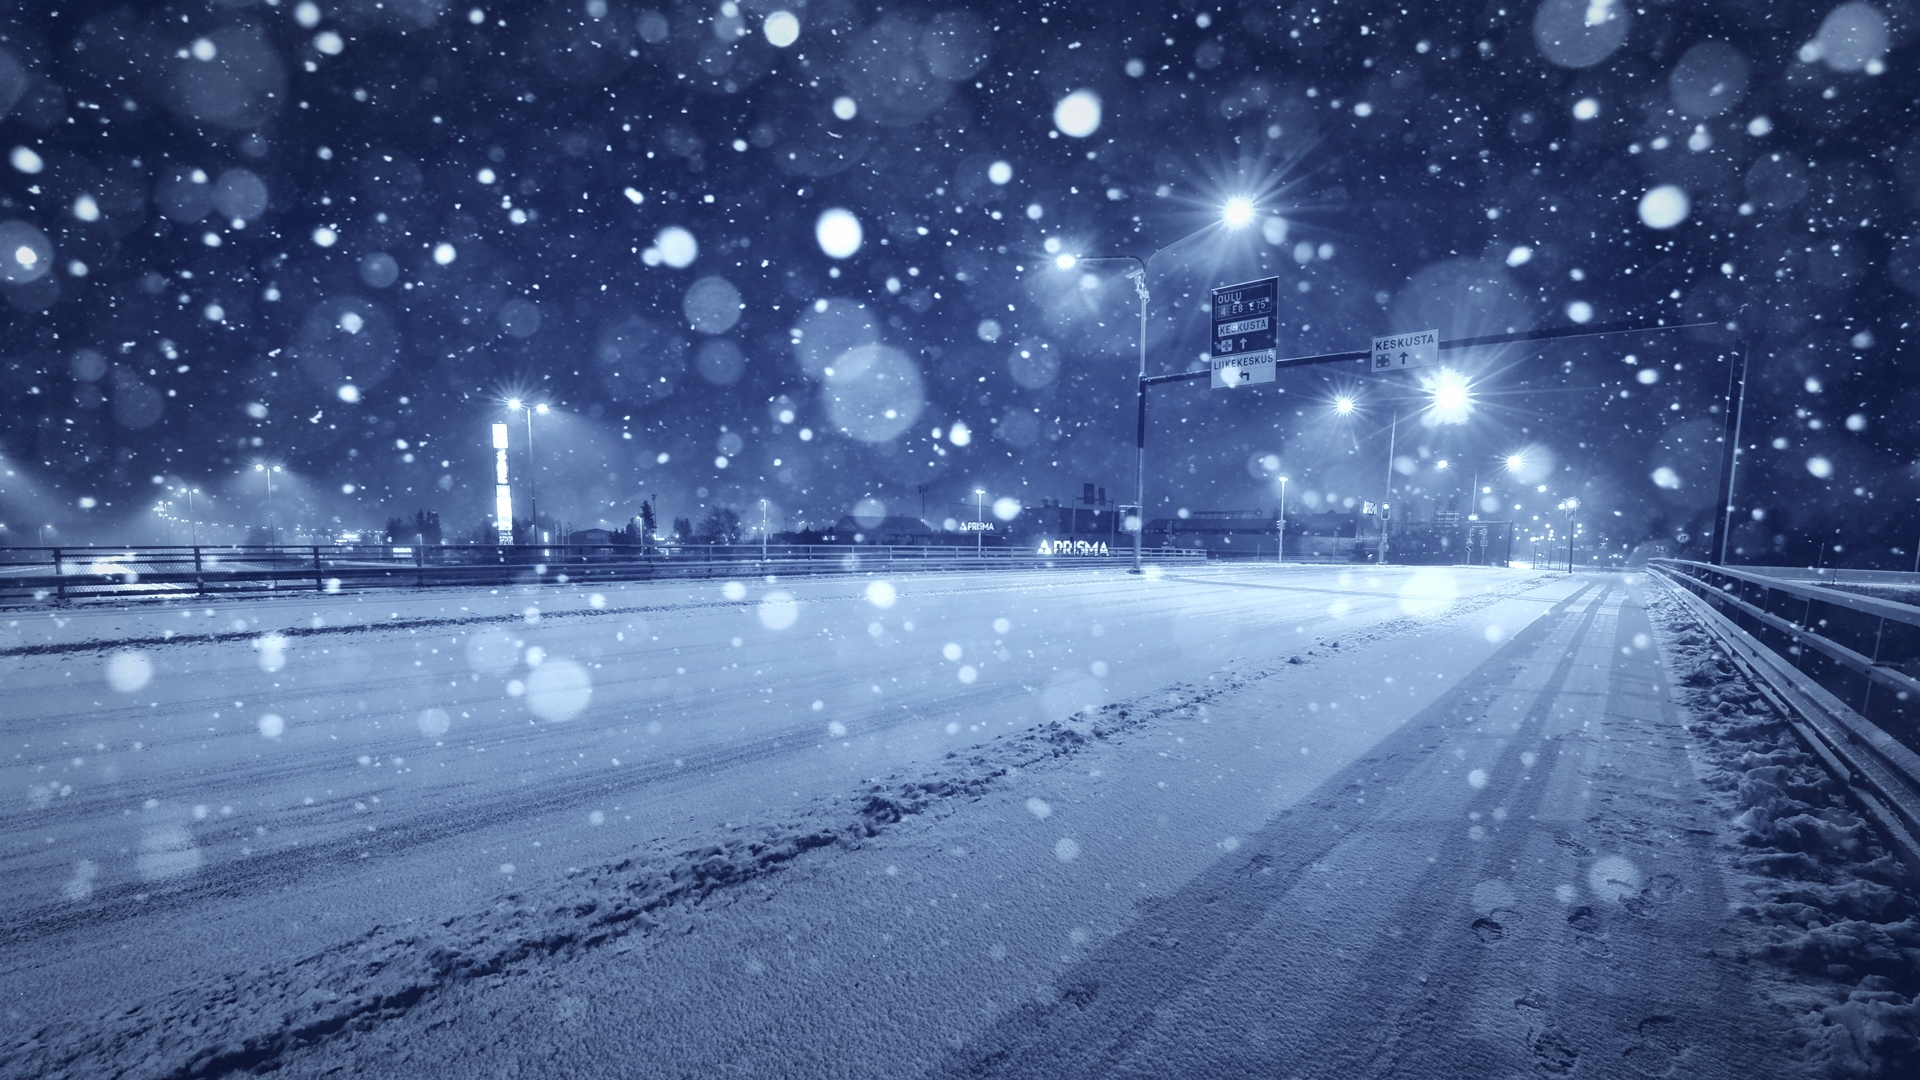 Winter Freeway Wallpaper